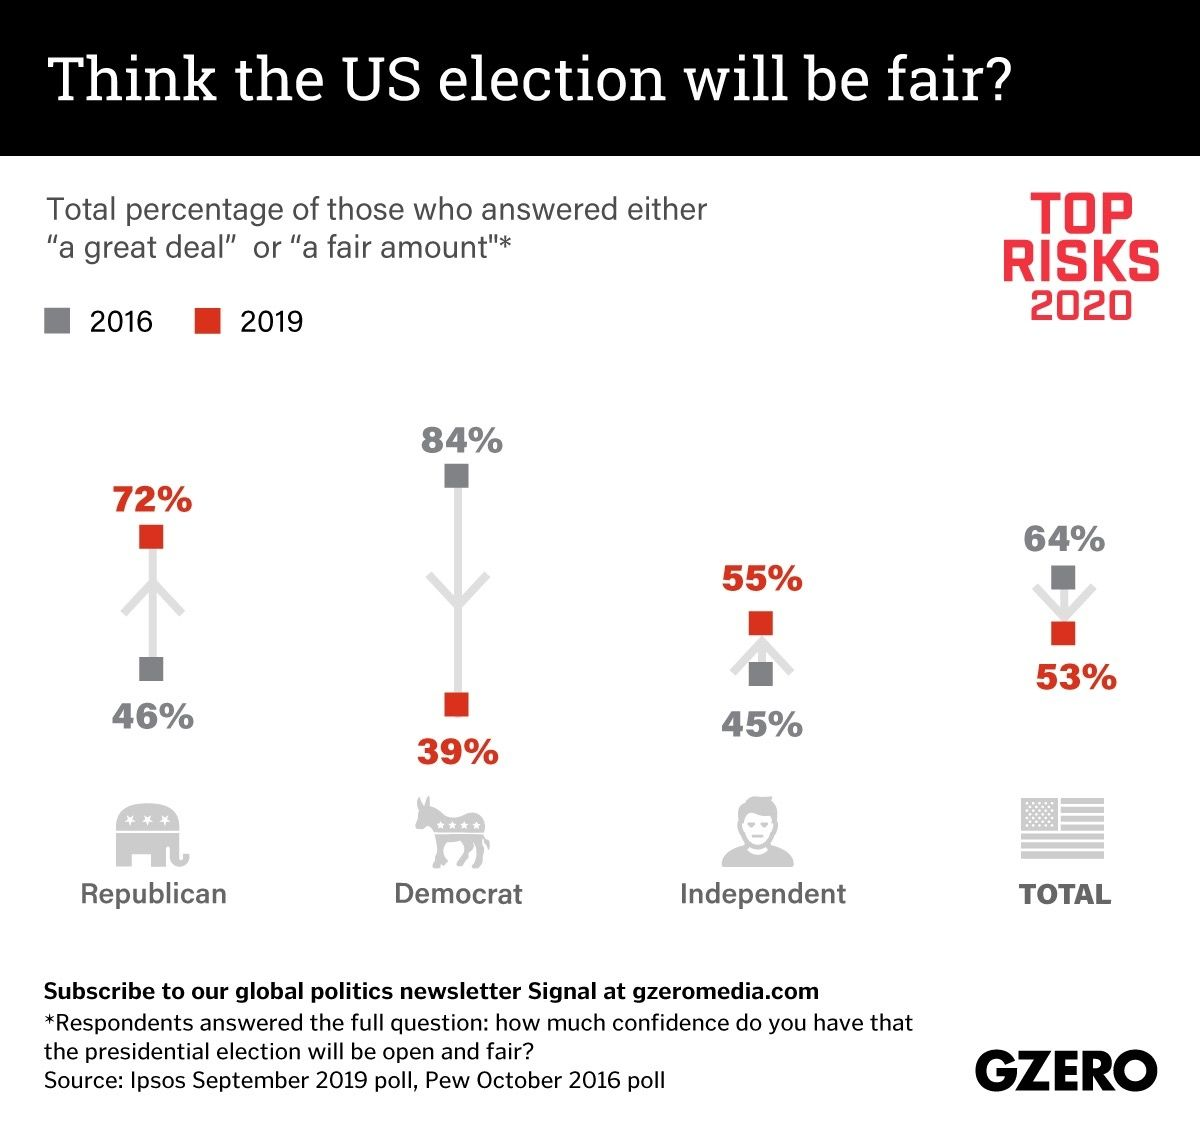 The Graphic Truth: Think the US election will be fair?